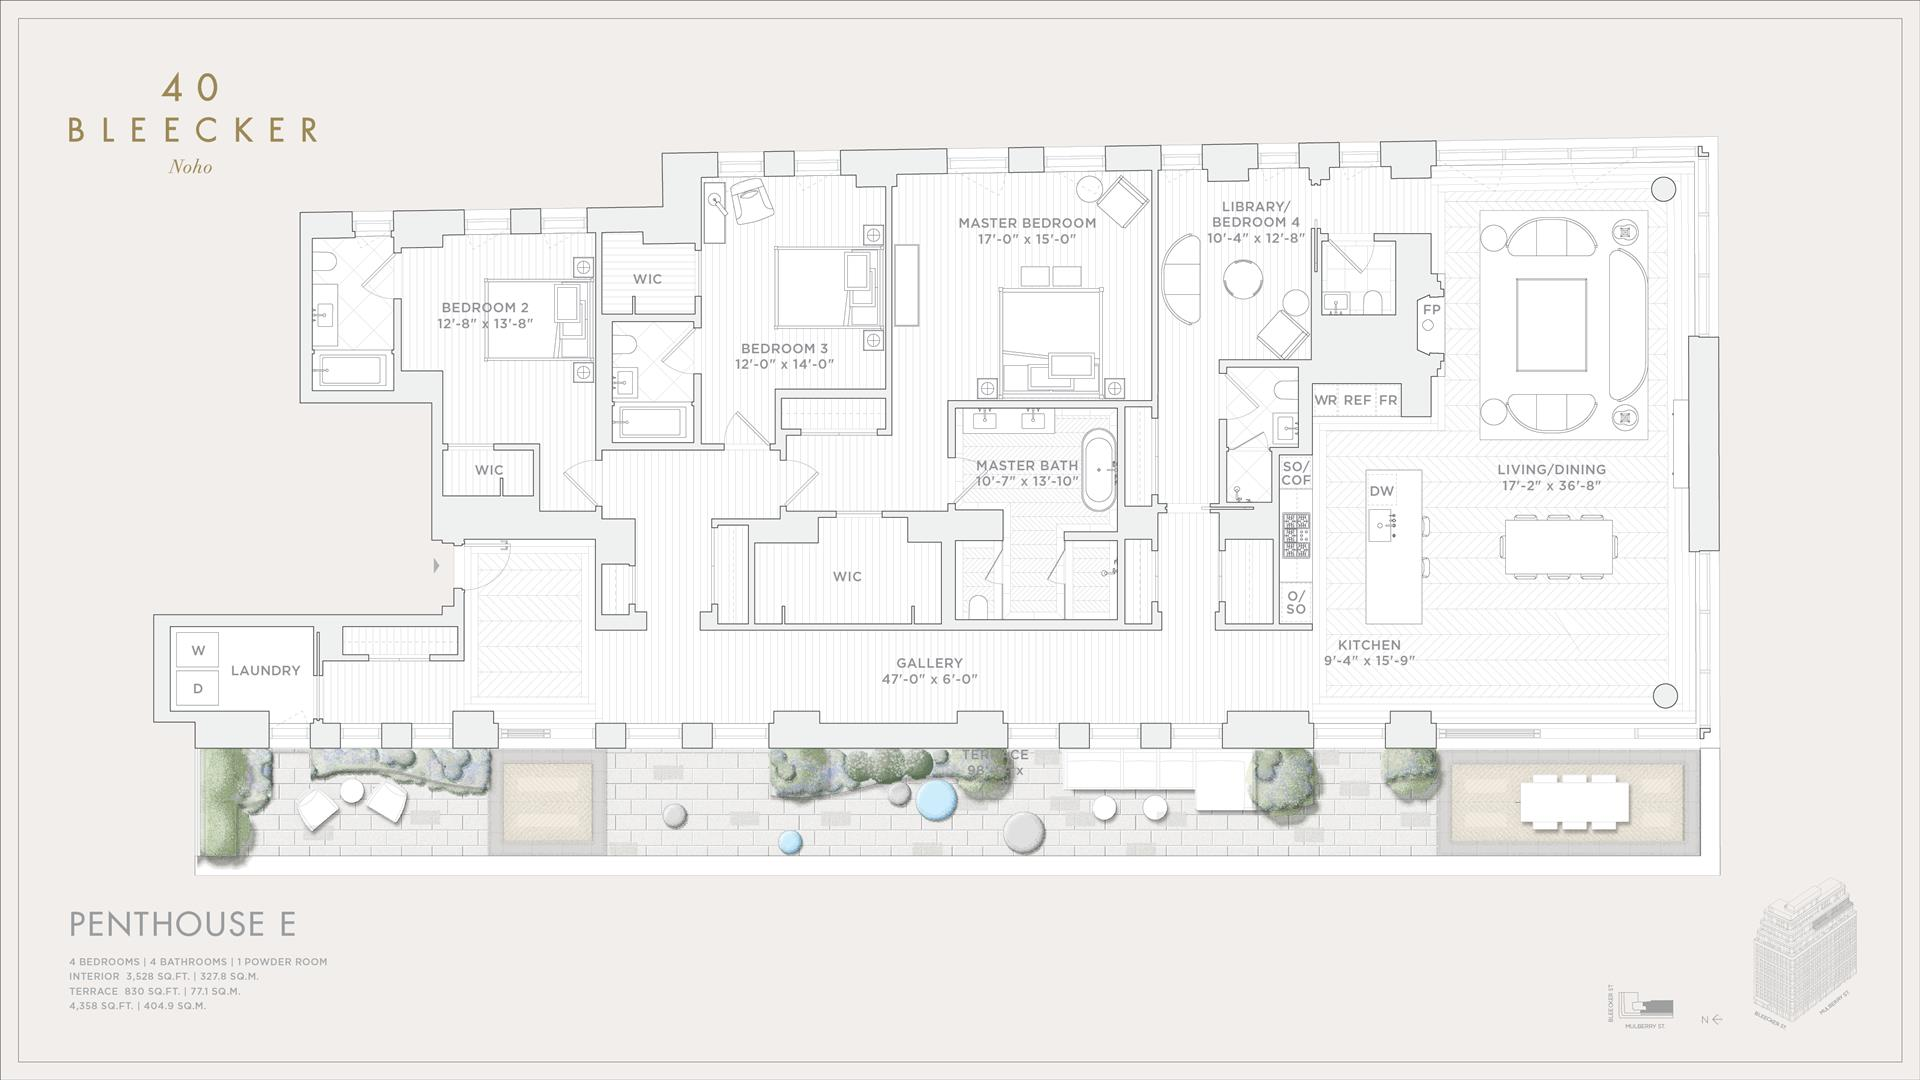 Floor plan of 40 Bleecker St, PHE - NoHo, New York